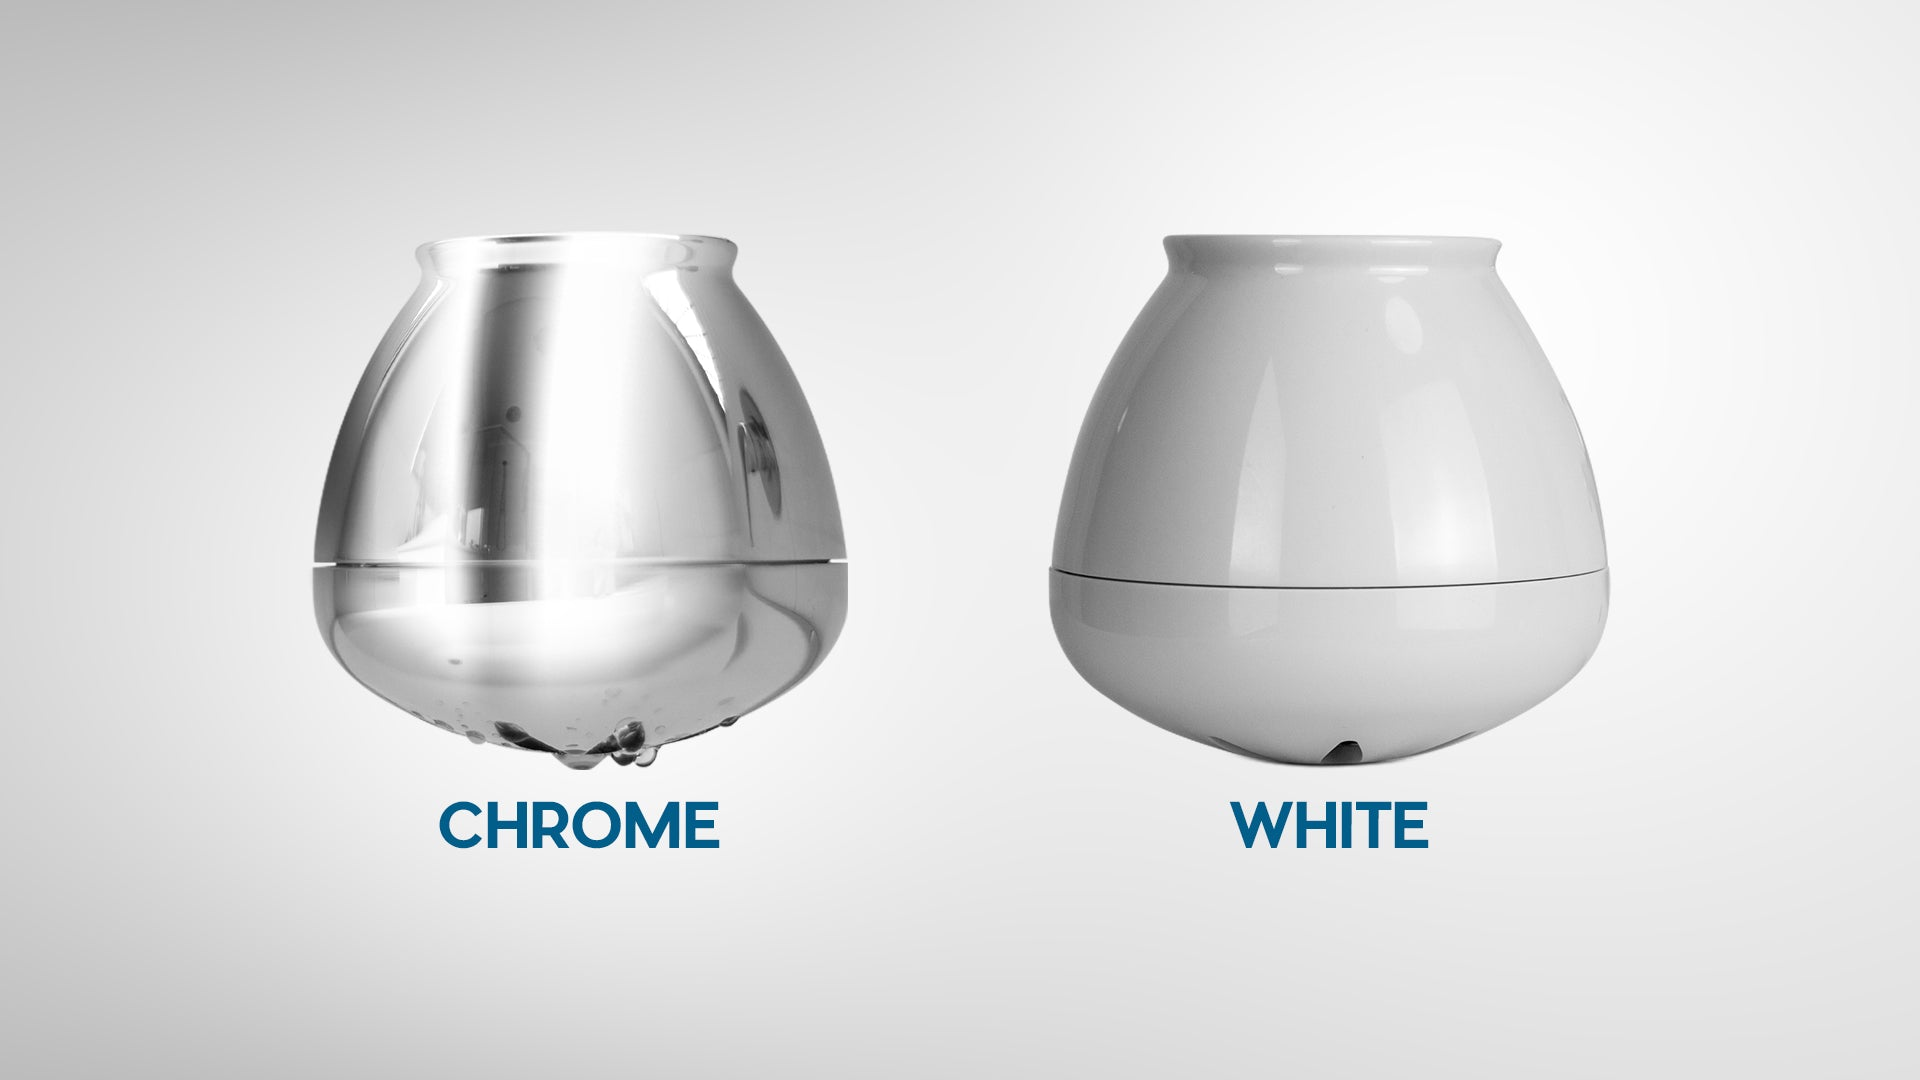 Chrome and White colors